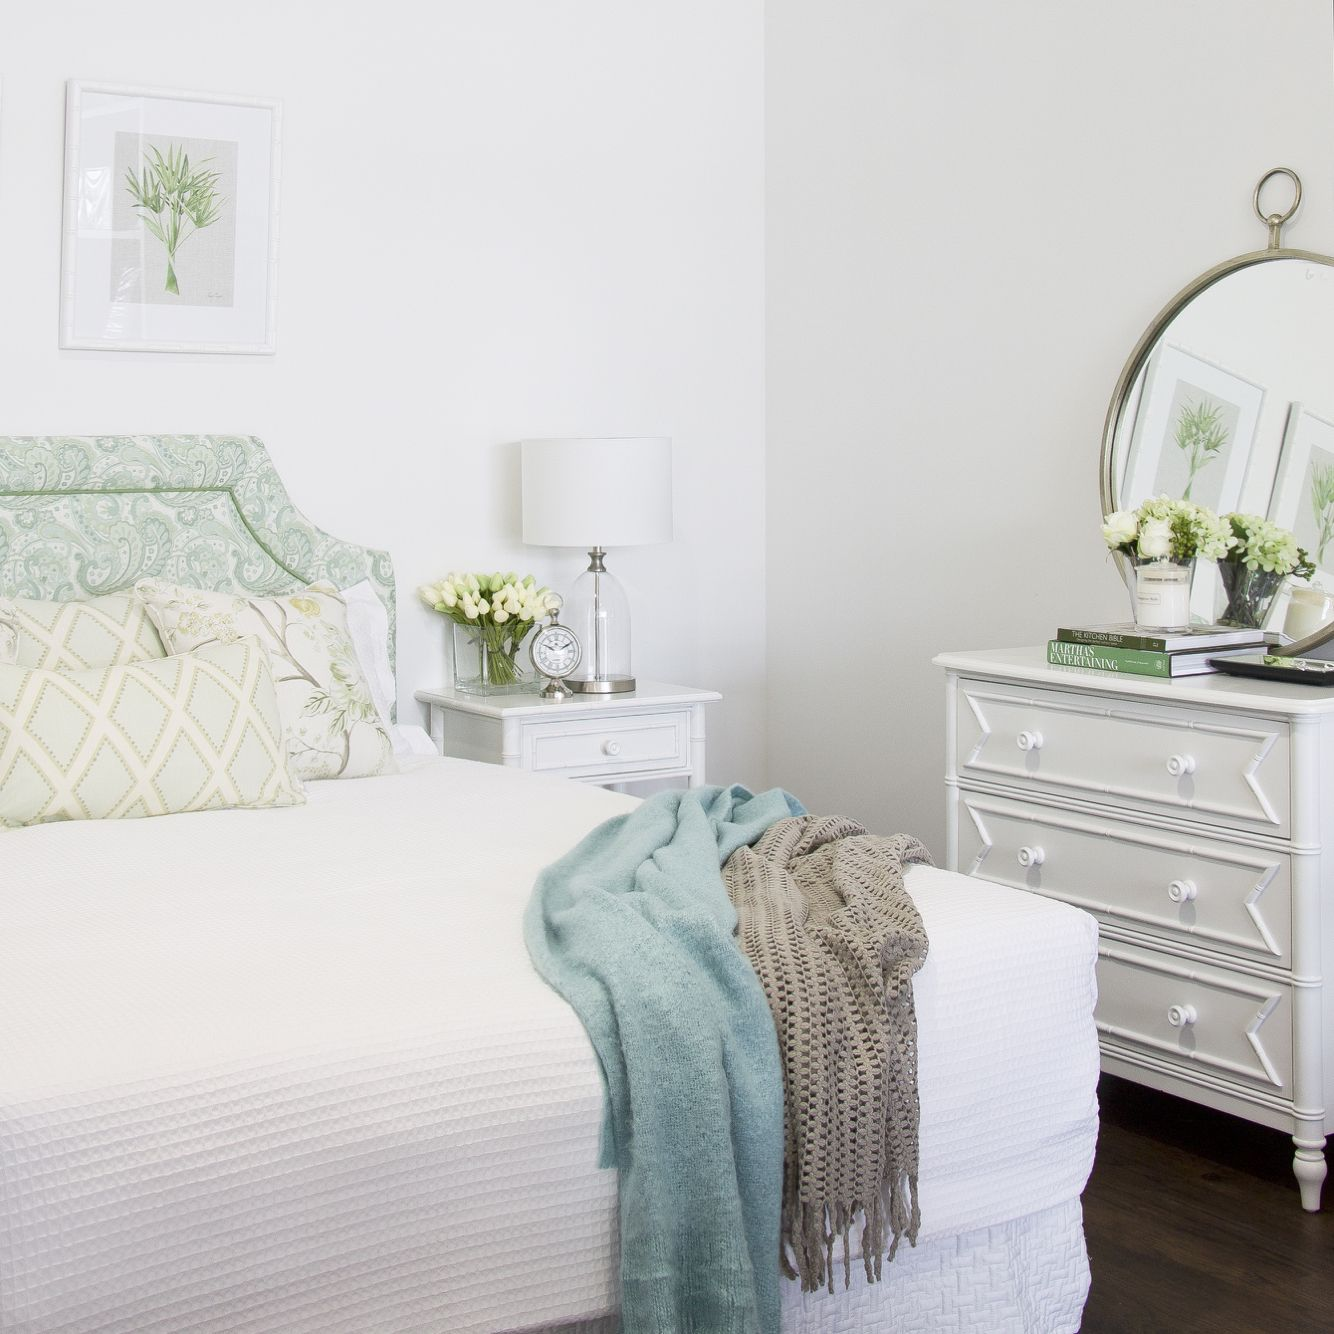 Hamptons Inspired Luxury Home Master Bedroom Robeson: Bedroom Display At Hamptons Style.